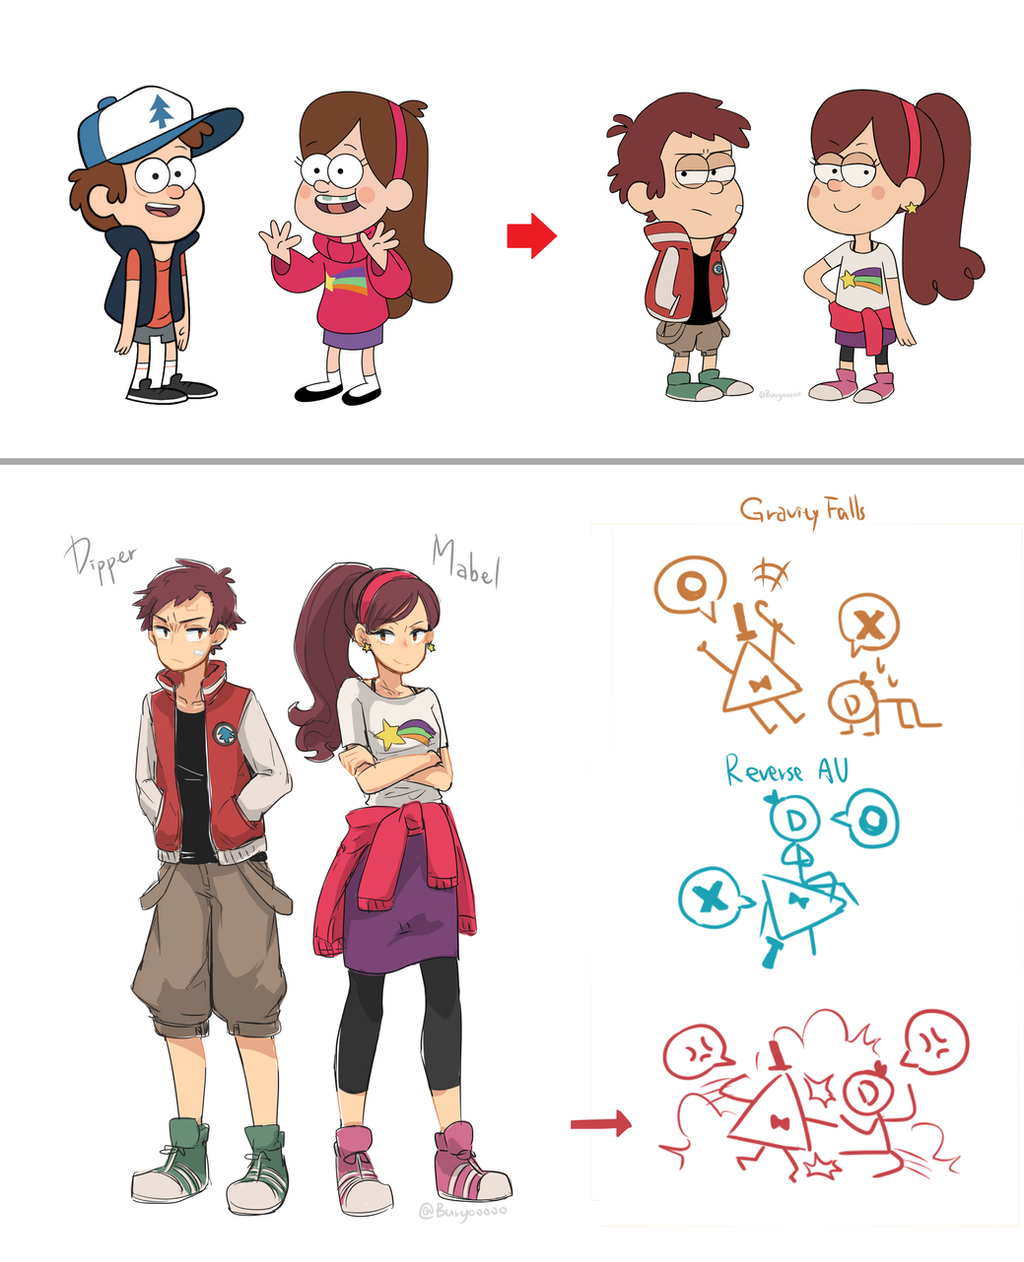 Gravity Falls Dipper And Mabel Parents ... by Buryooooo on De...